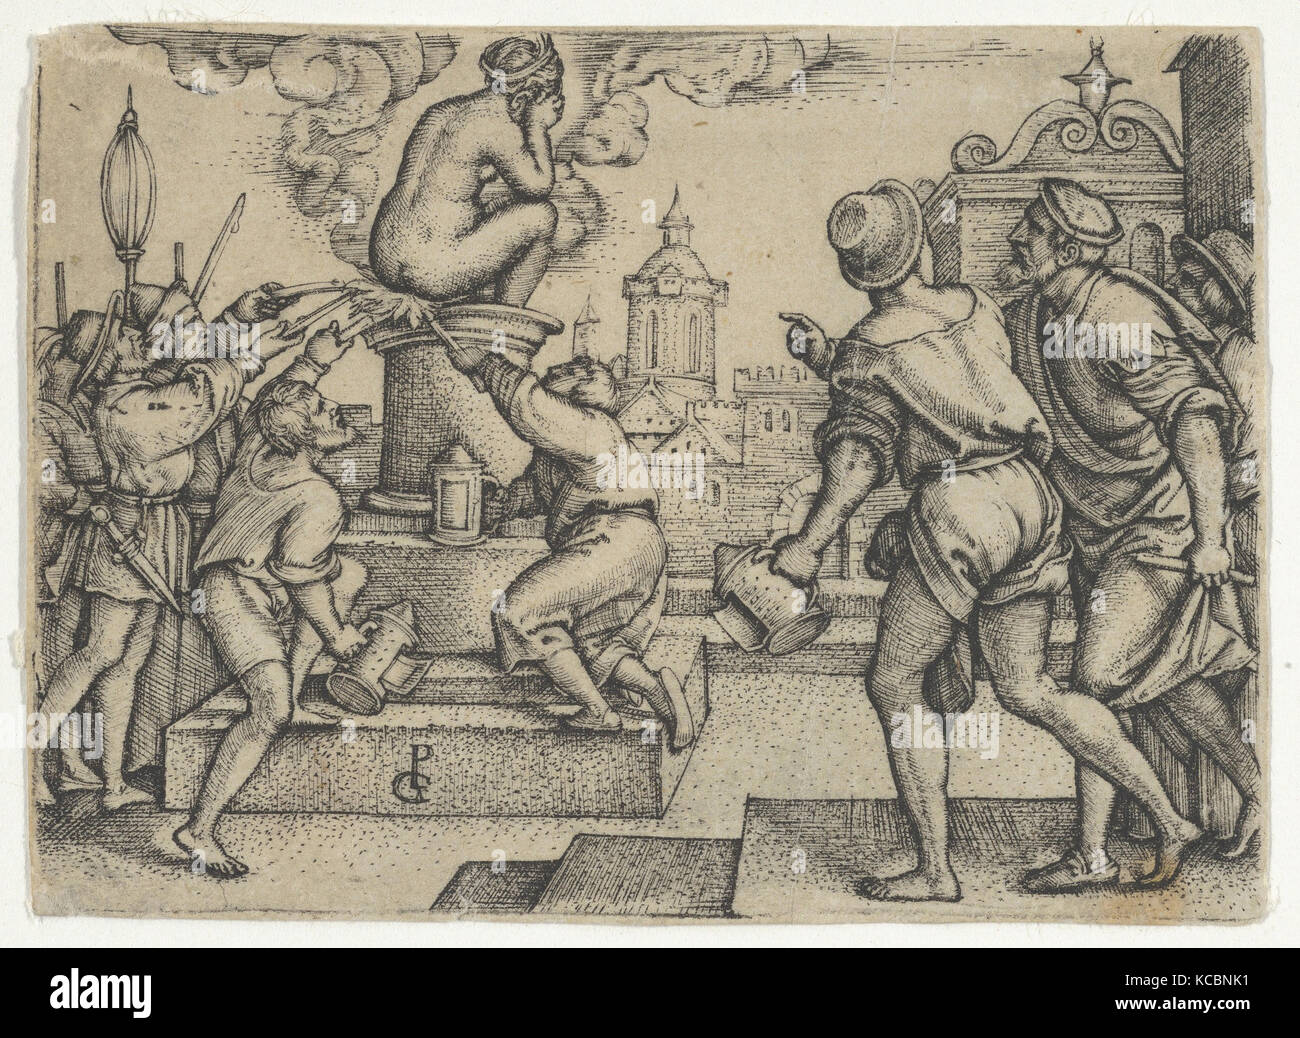 The Courtesan Punished, from The Story of the Magician Virgil, Georg Pencz Stock Photo